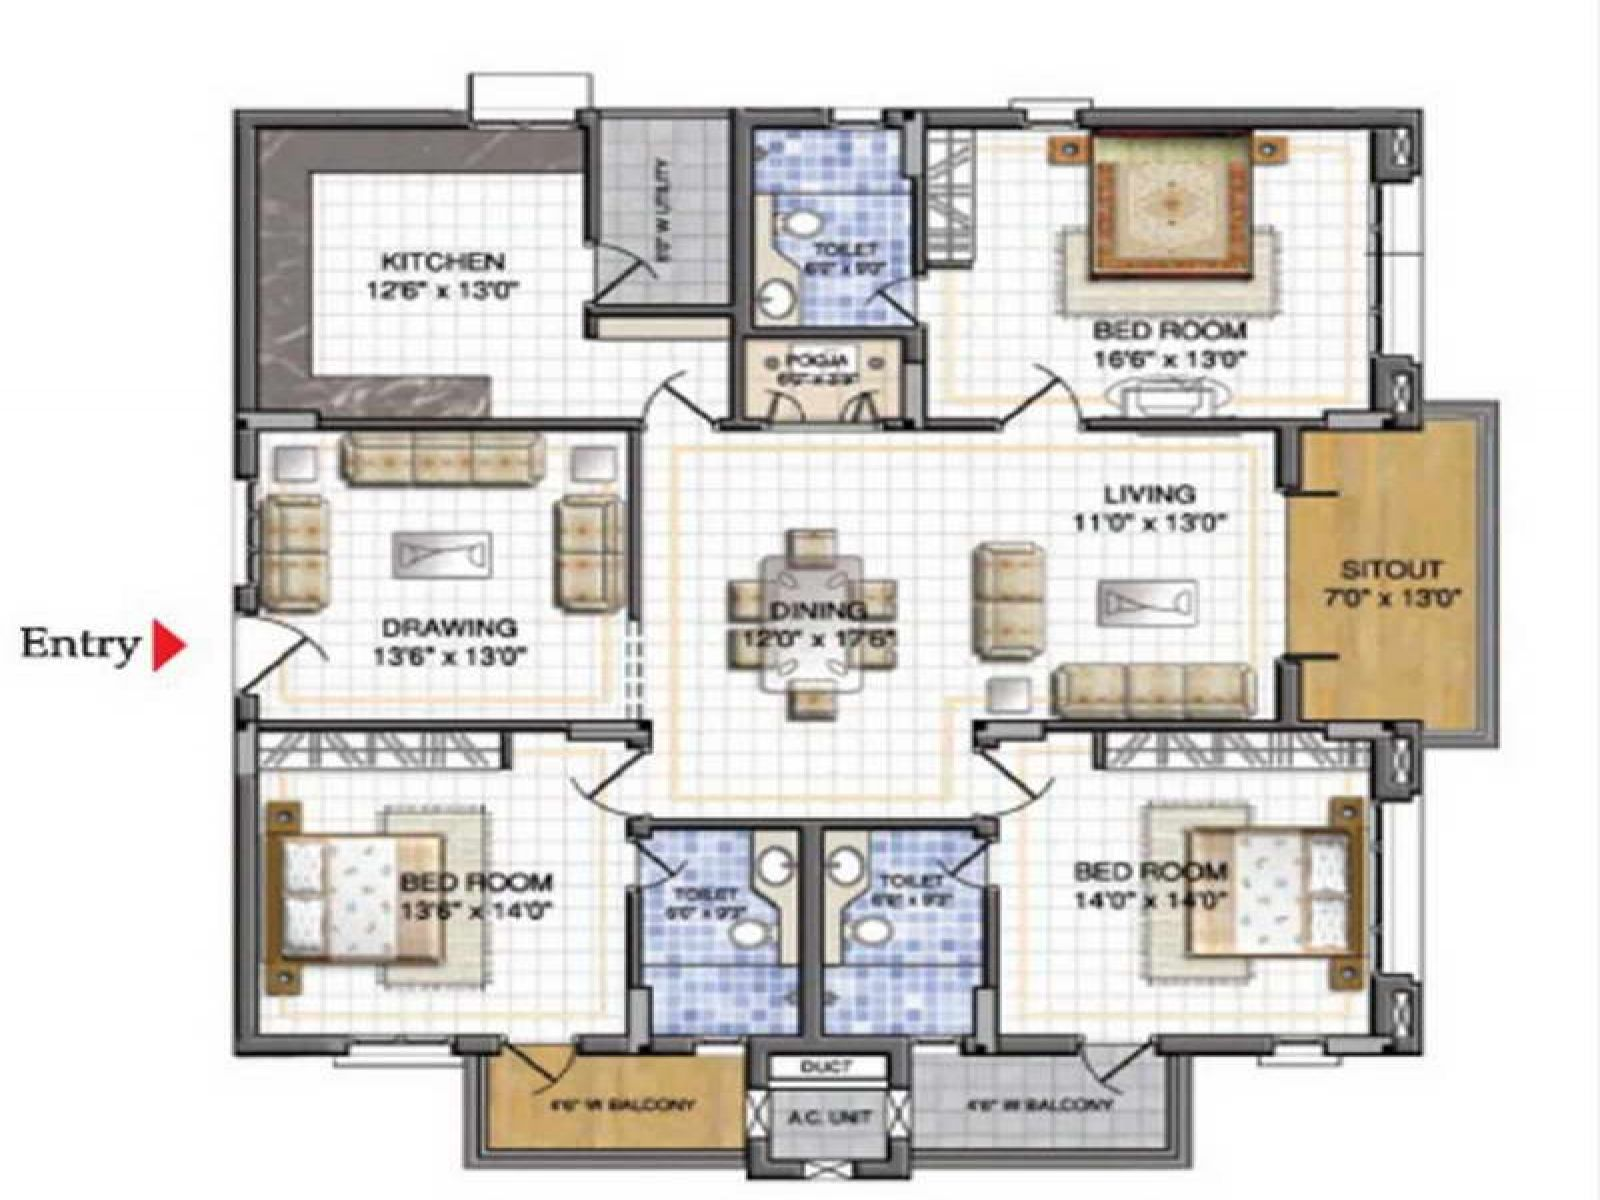 Home Plan Design Online Plans Impressive Plan Design Software Windows Floor Free Online Terms Copyright . Decorating Inspiration